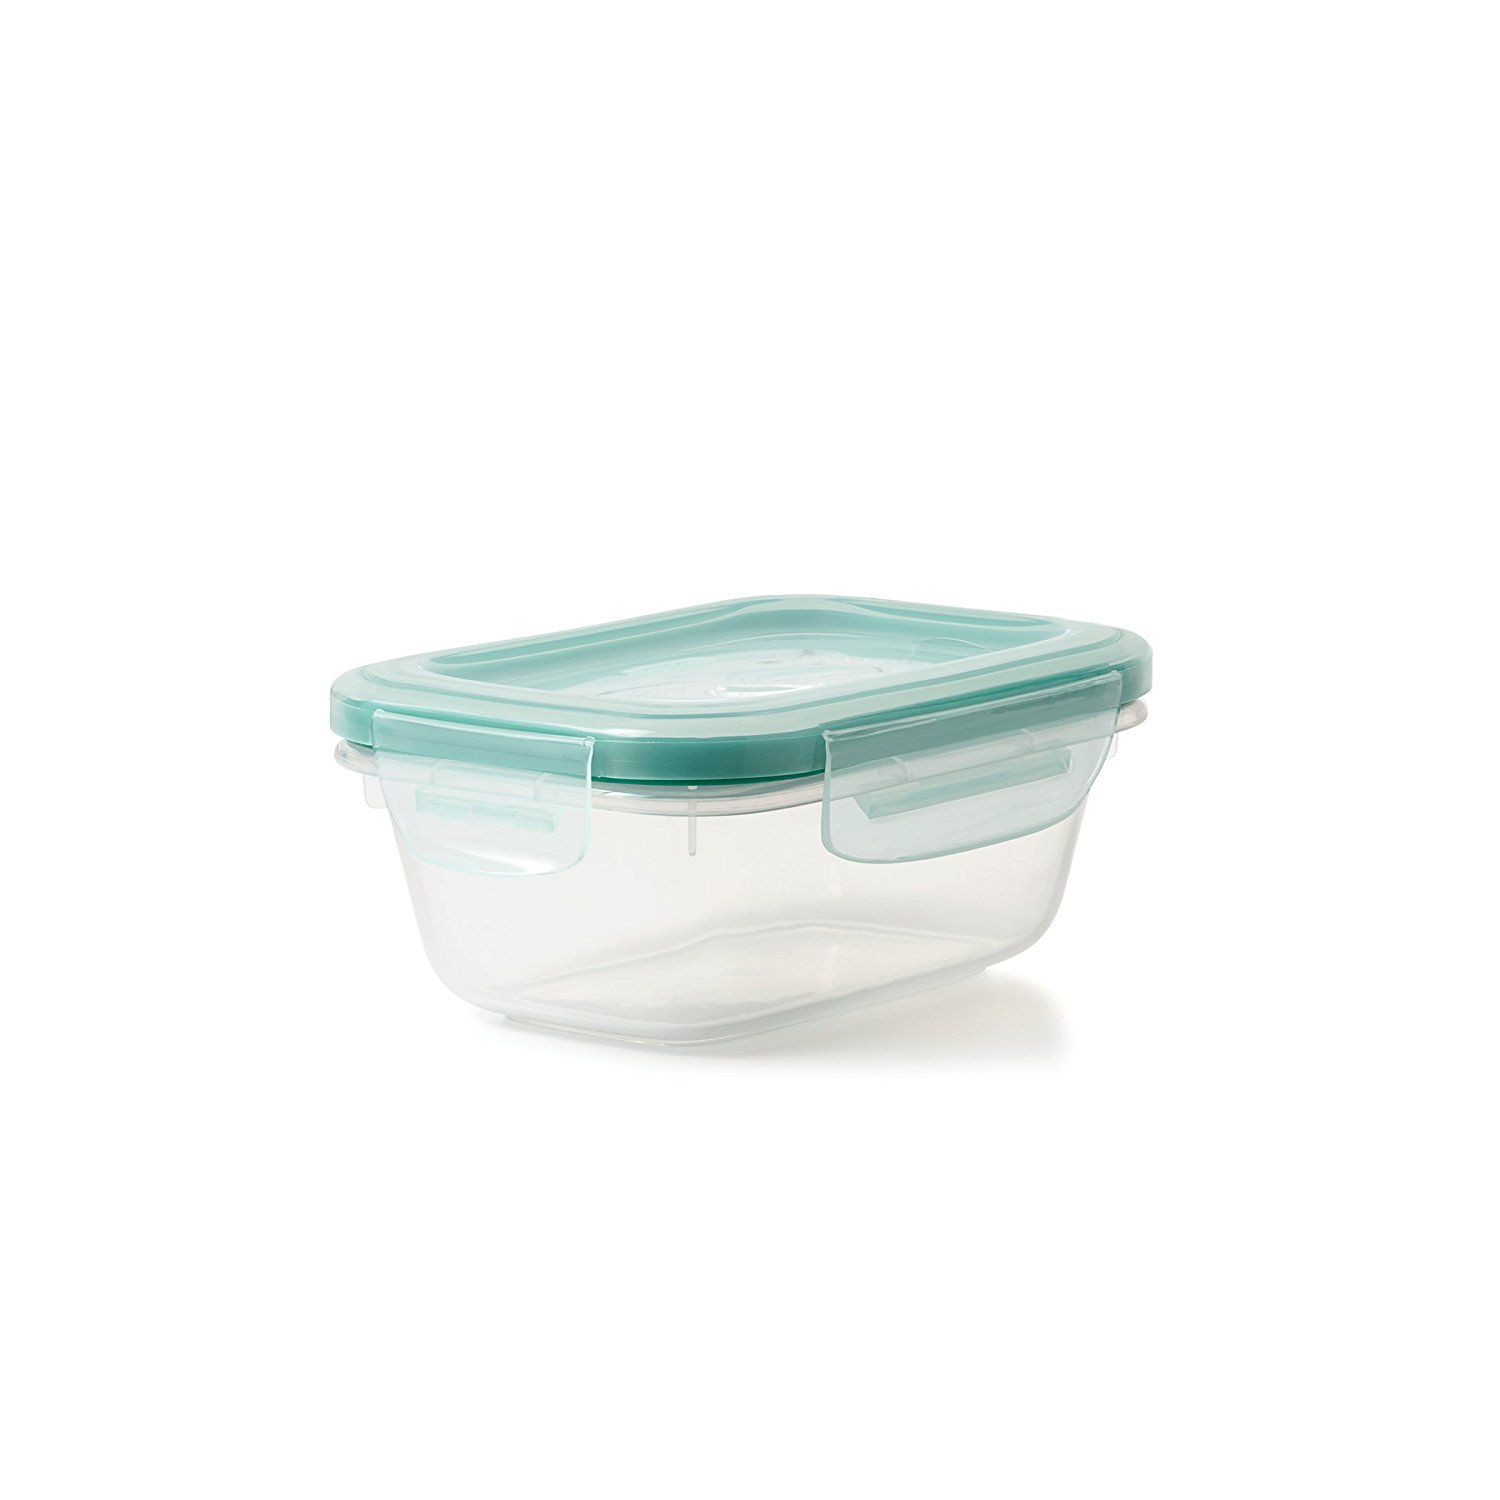 OXO Good Grips 16 cup Smart Seal Leakproof Food Storage Container